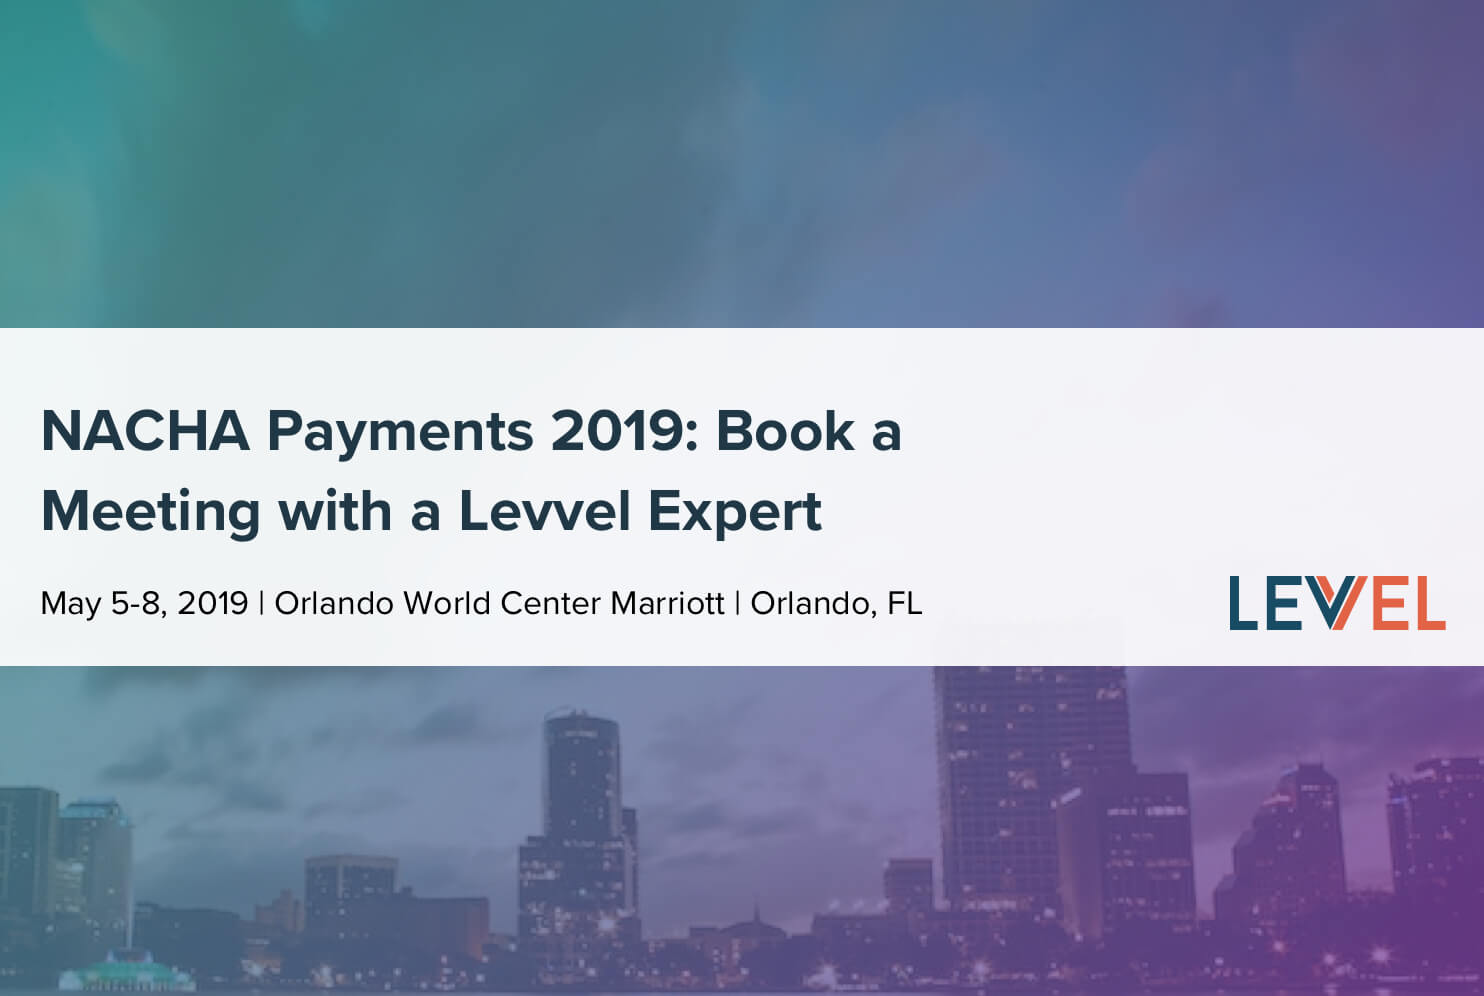 NACHA Payments 2019: Book a Meeting with a Levvel Expert